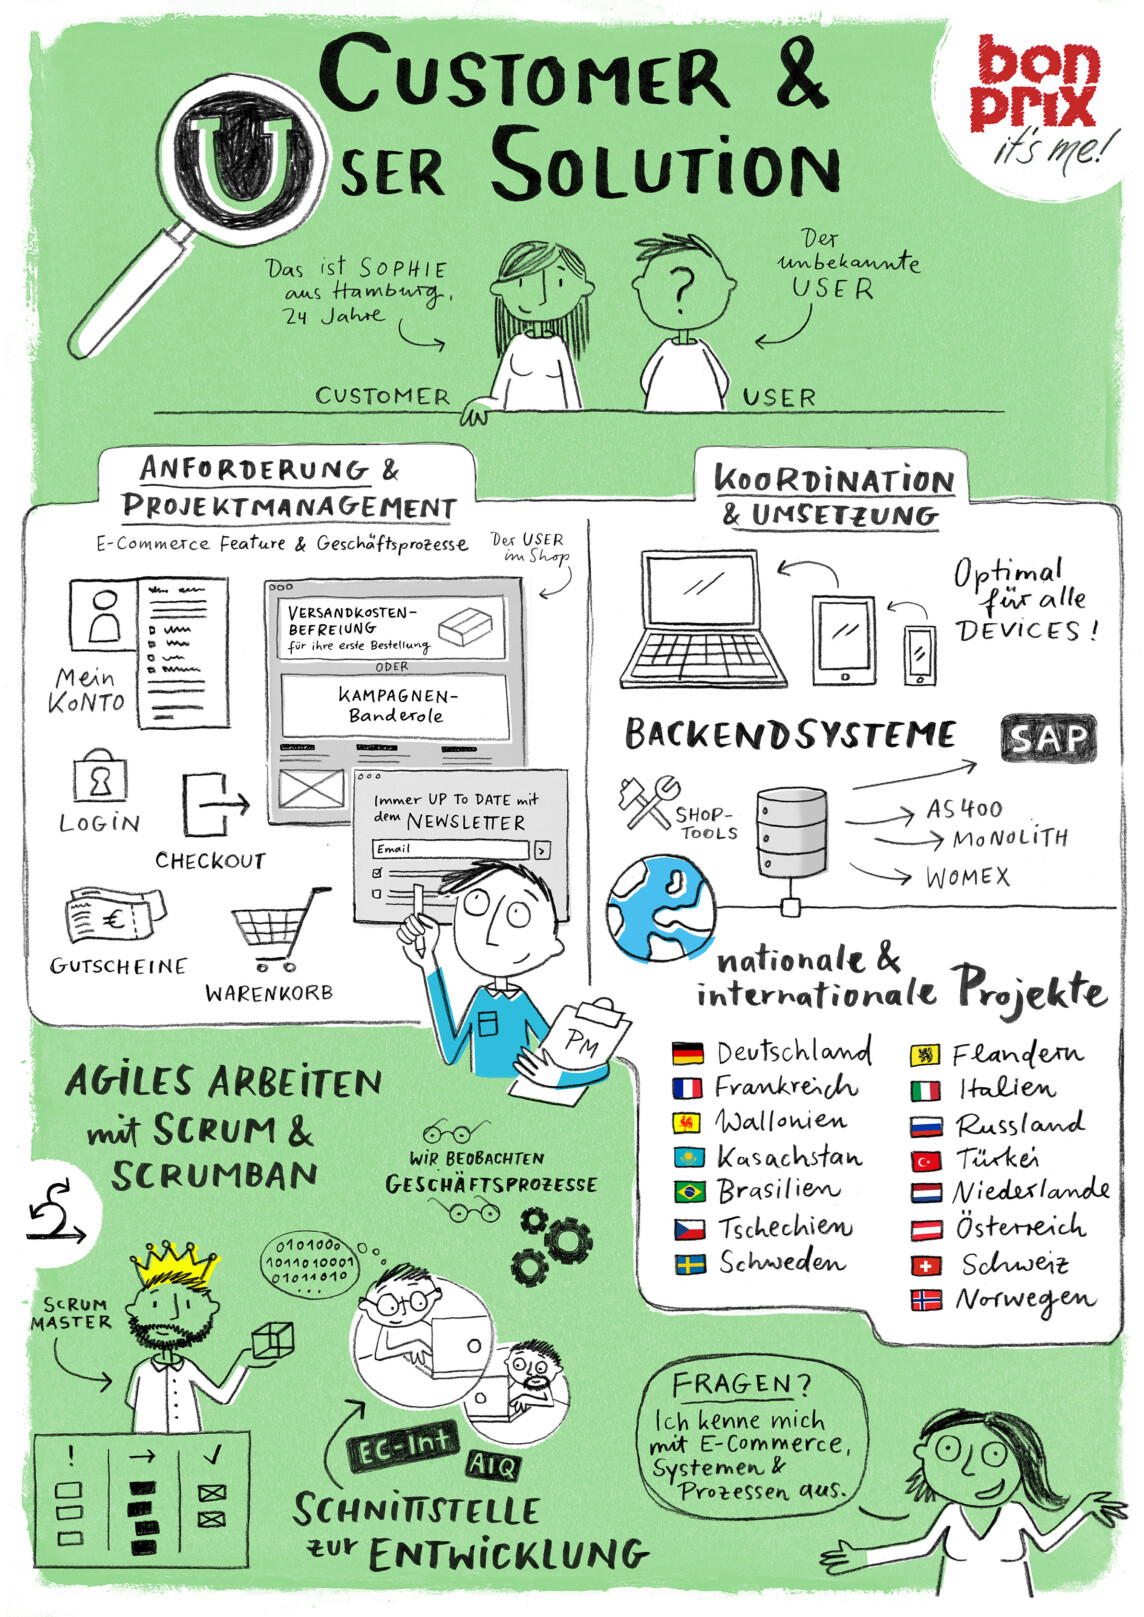 Sketchnote Poster Customer User Solution bonprix